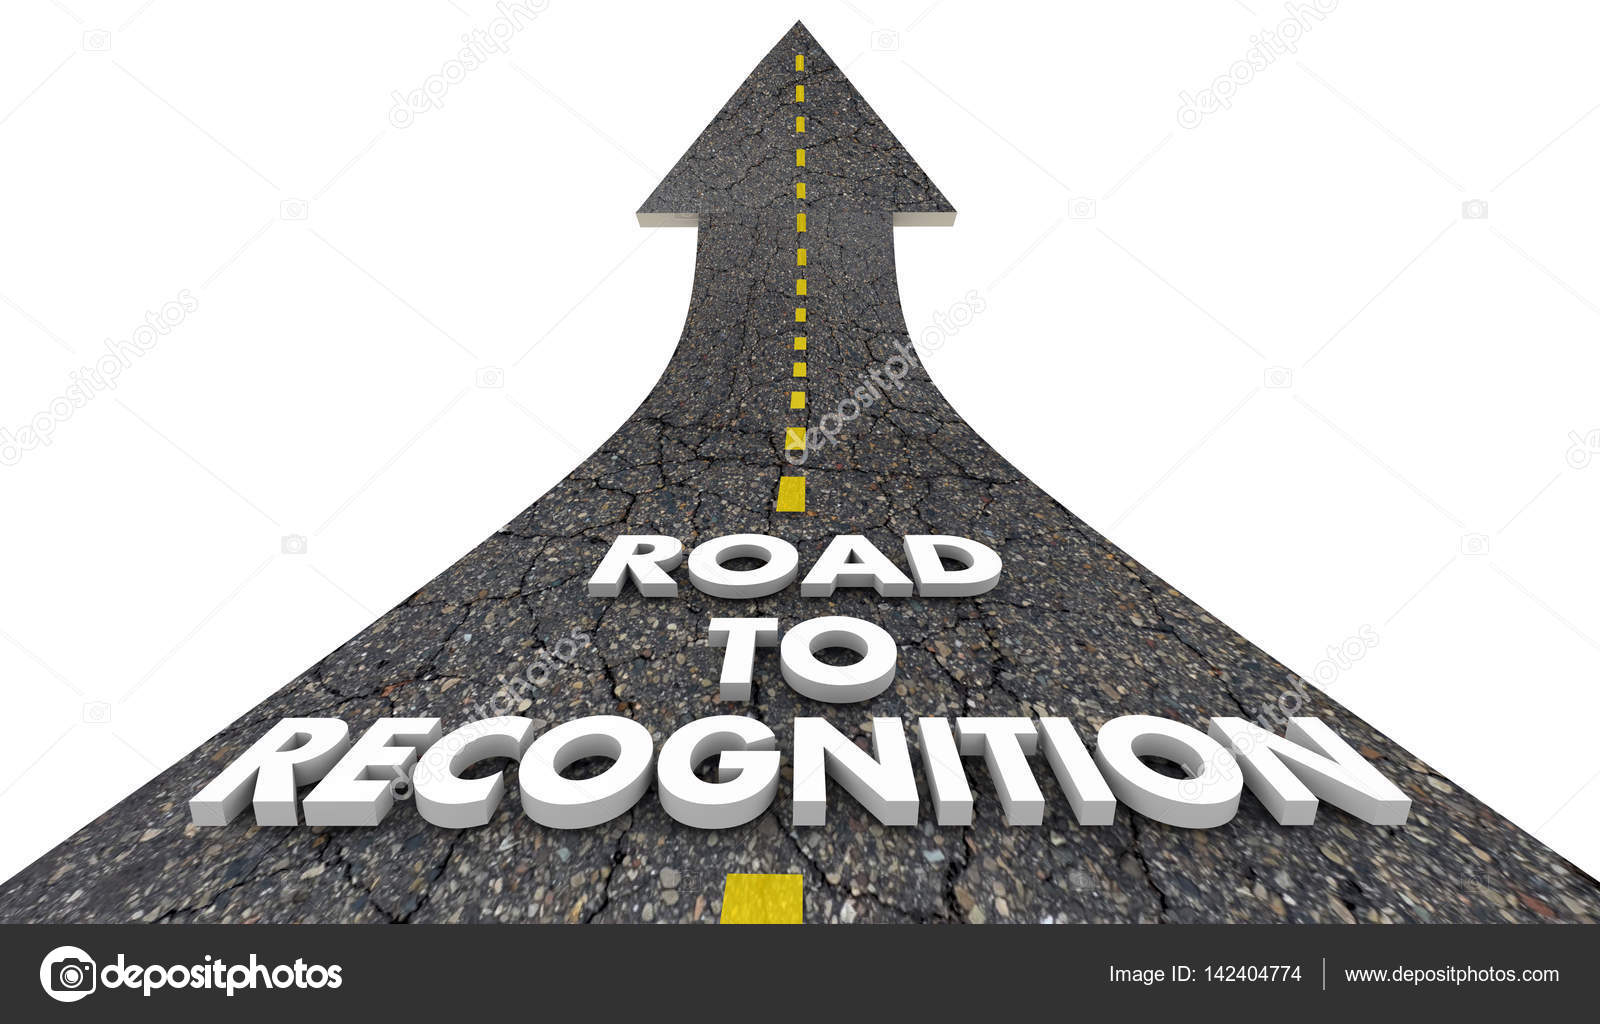 Image result for Image of Road to recognition